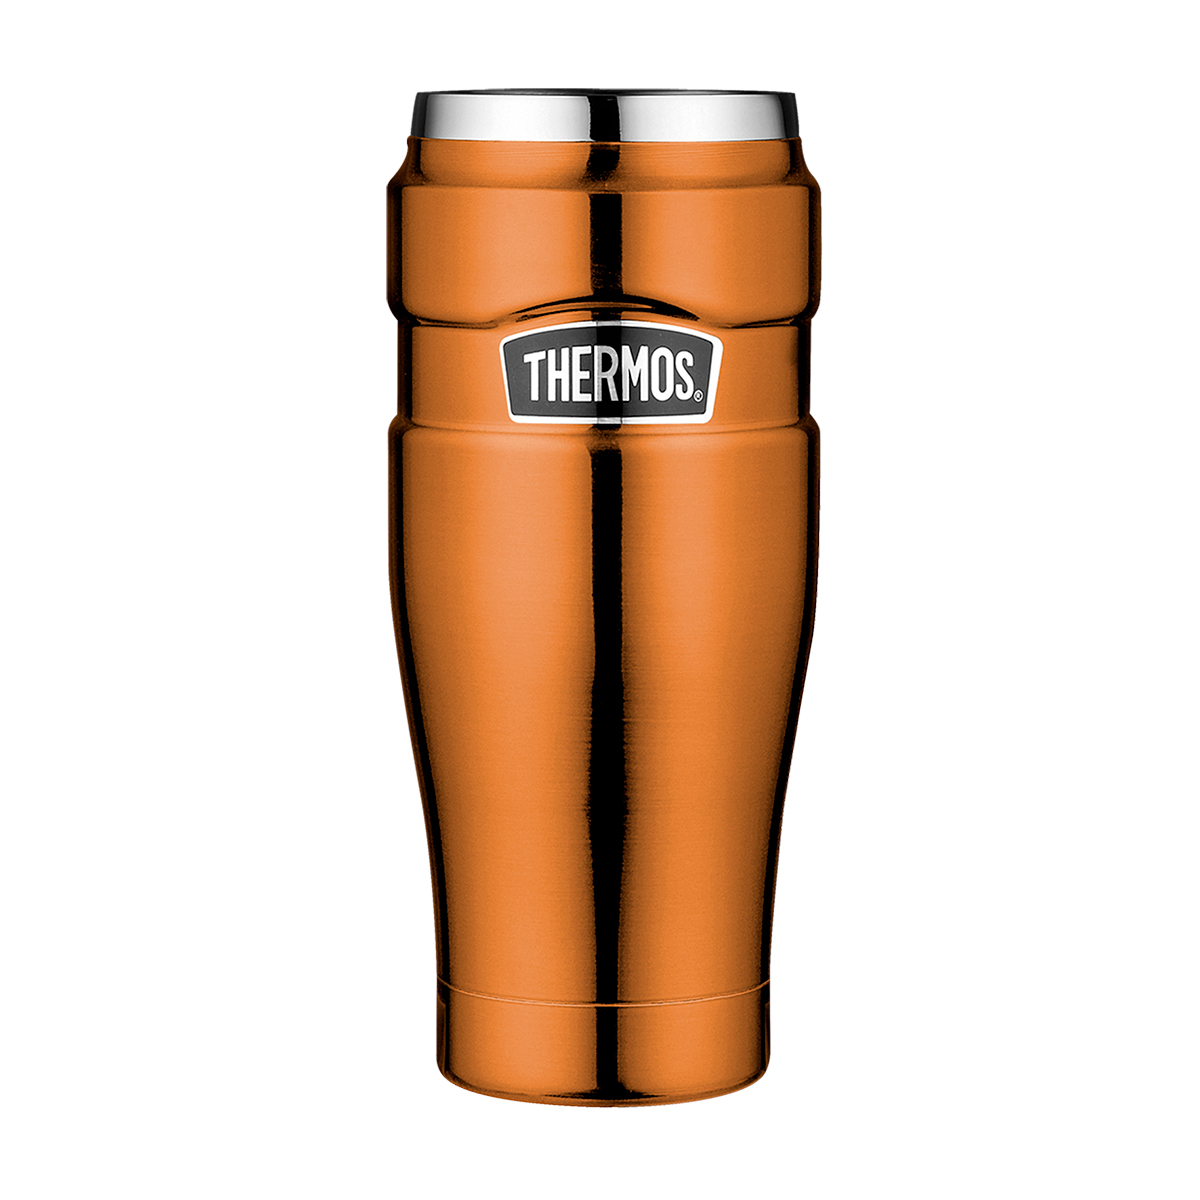 Термокружка Thermos Isolierbecher Stainless King copper, объем 0,47 л, цвет  медный Thermos 4002.215.047 фото 0